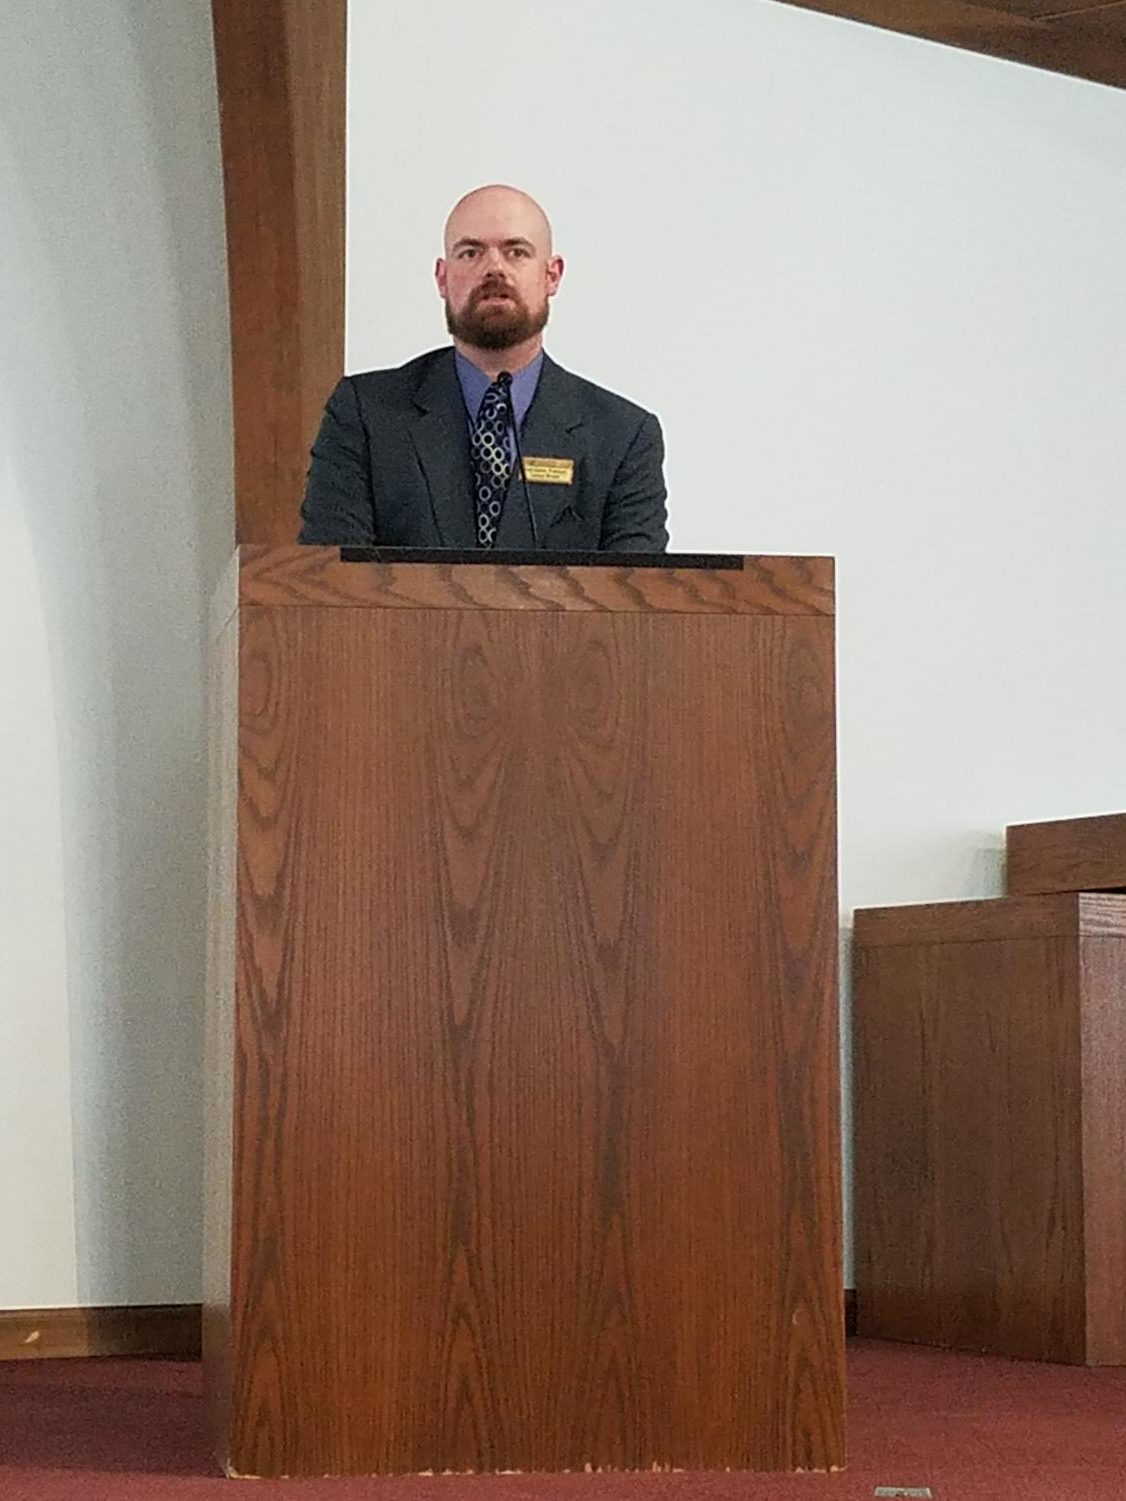 Minister Brad Dayton urged those attending a memorial service Oct. 31 to act in love and support after a shooting Oct. 27.